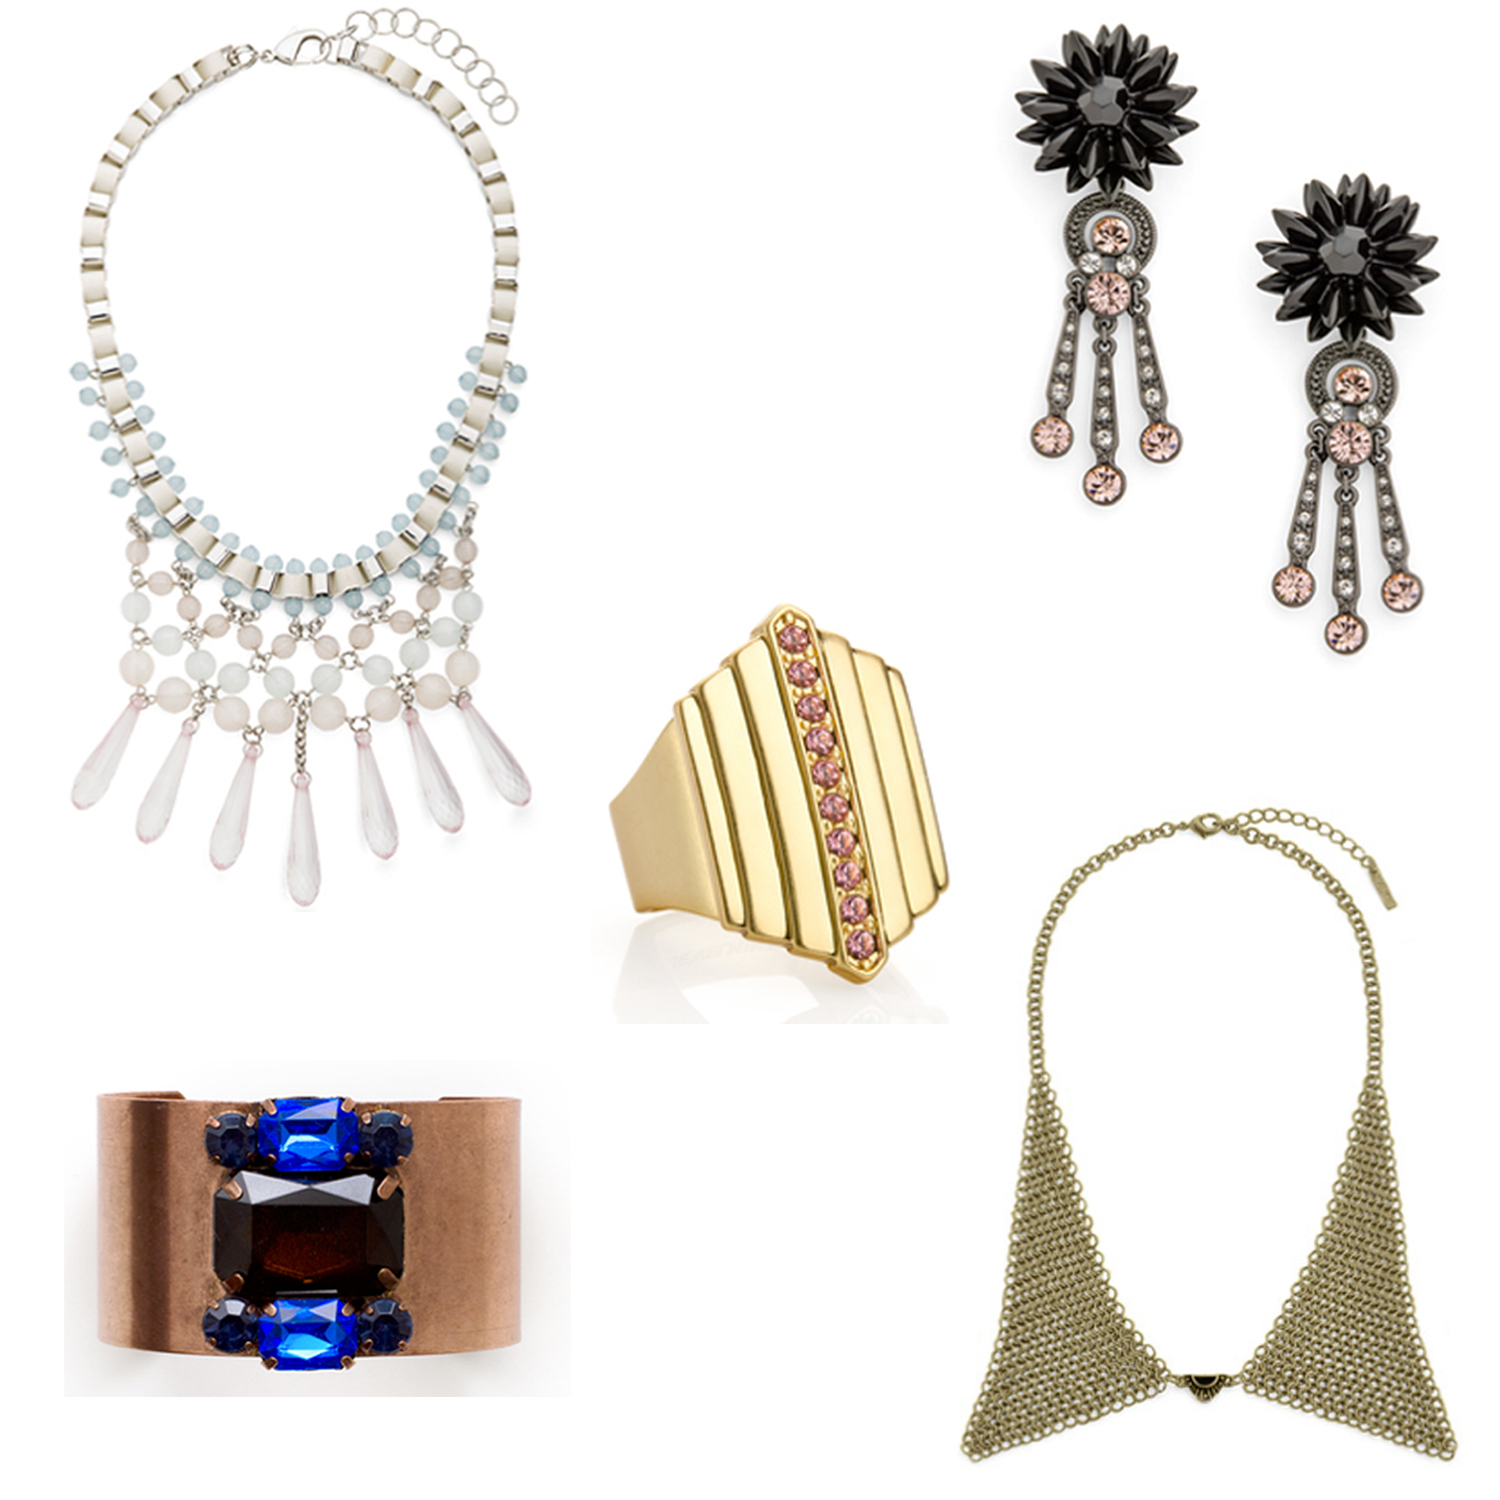 Budgetfriendly Jewelry Websites